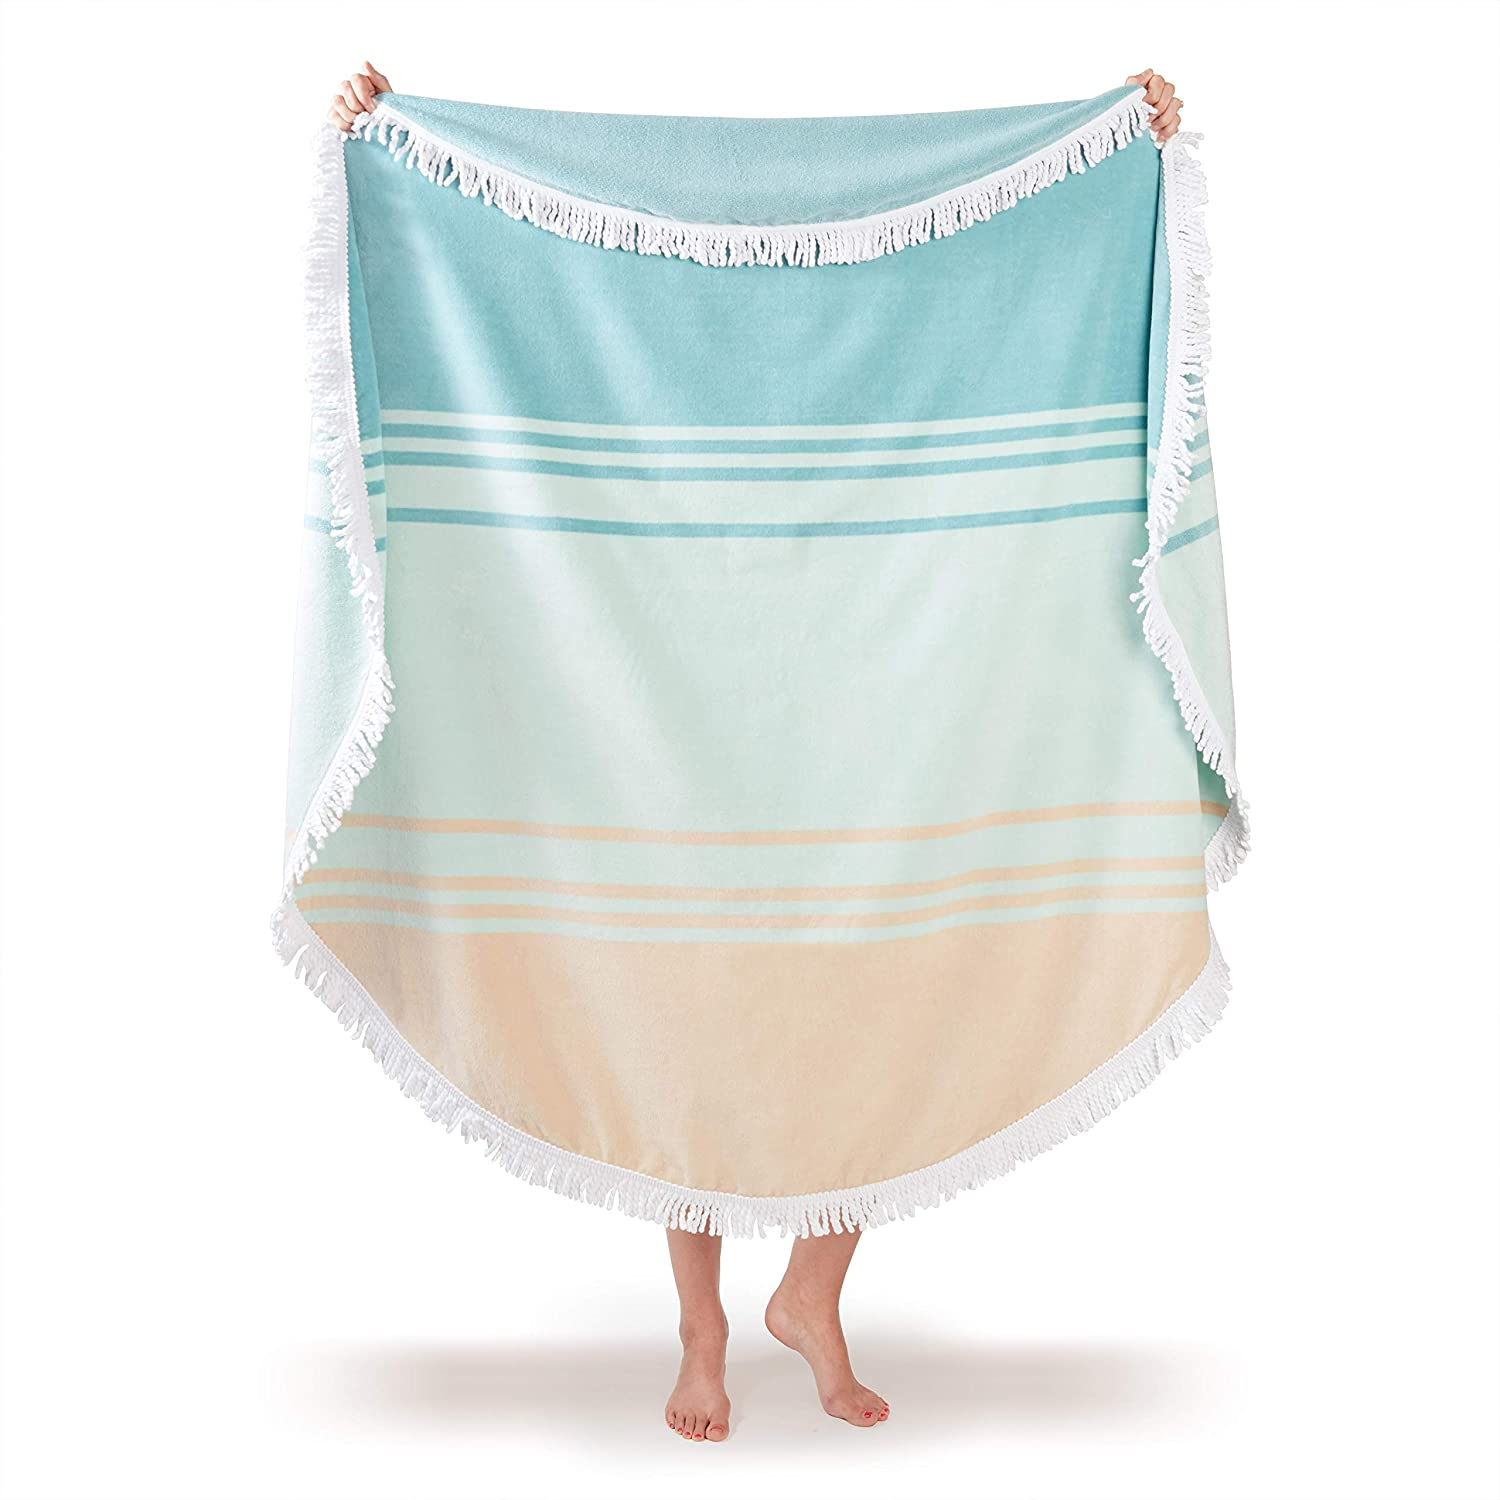 The Luxury Thick Round Beach Towel travel product recommended by Adam Krell on Lifney.